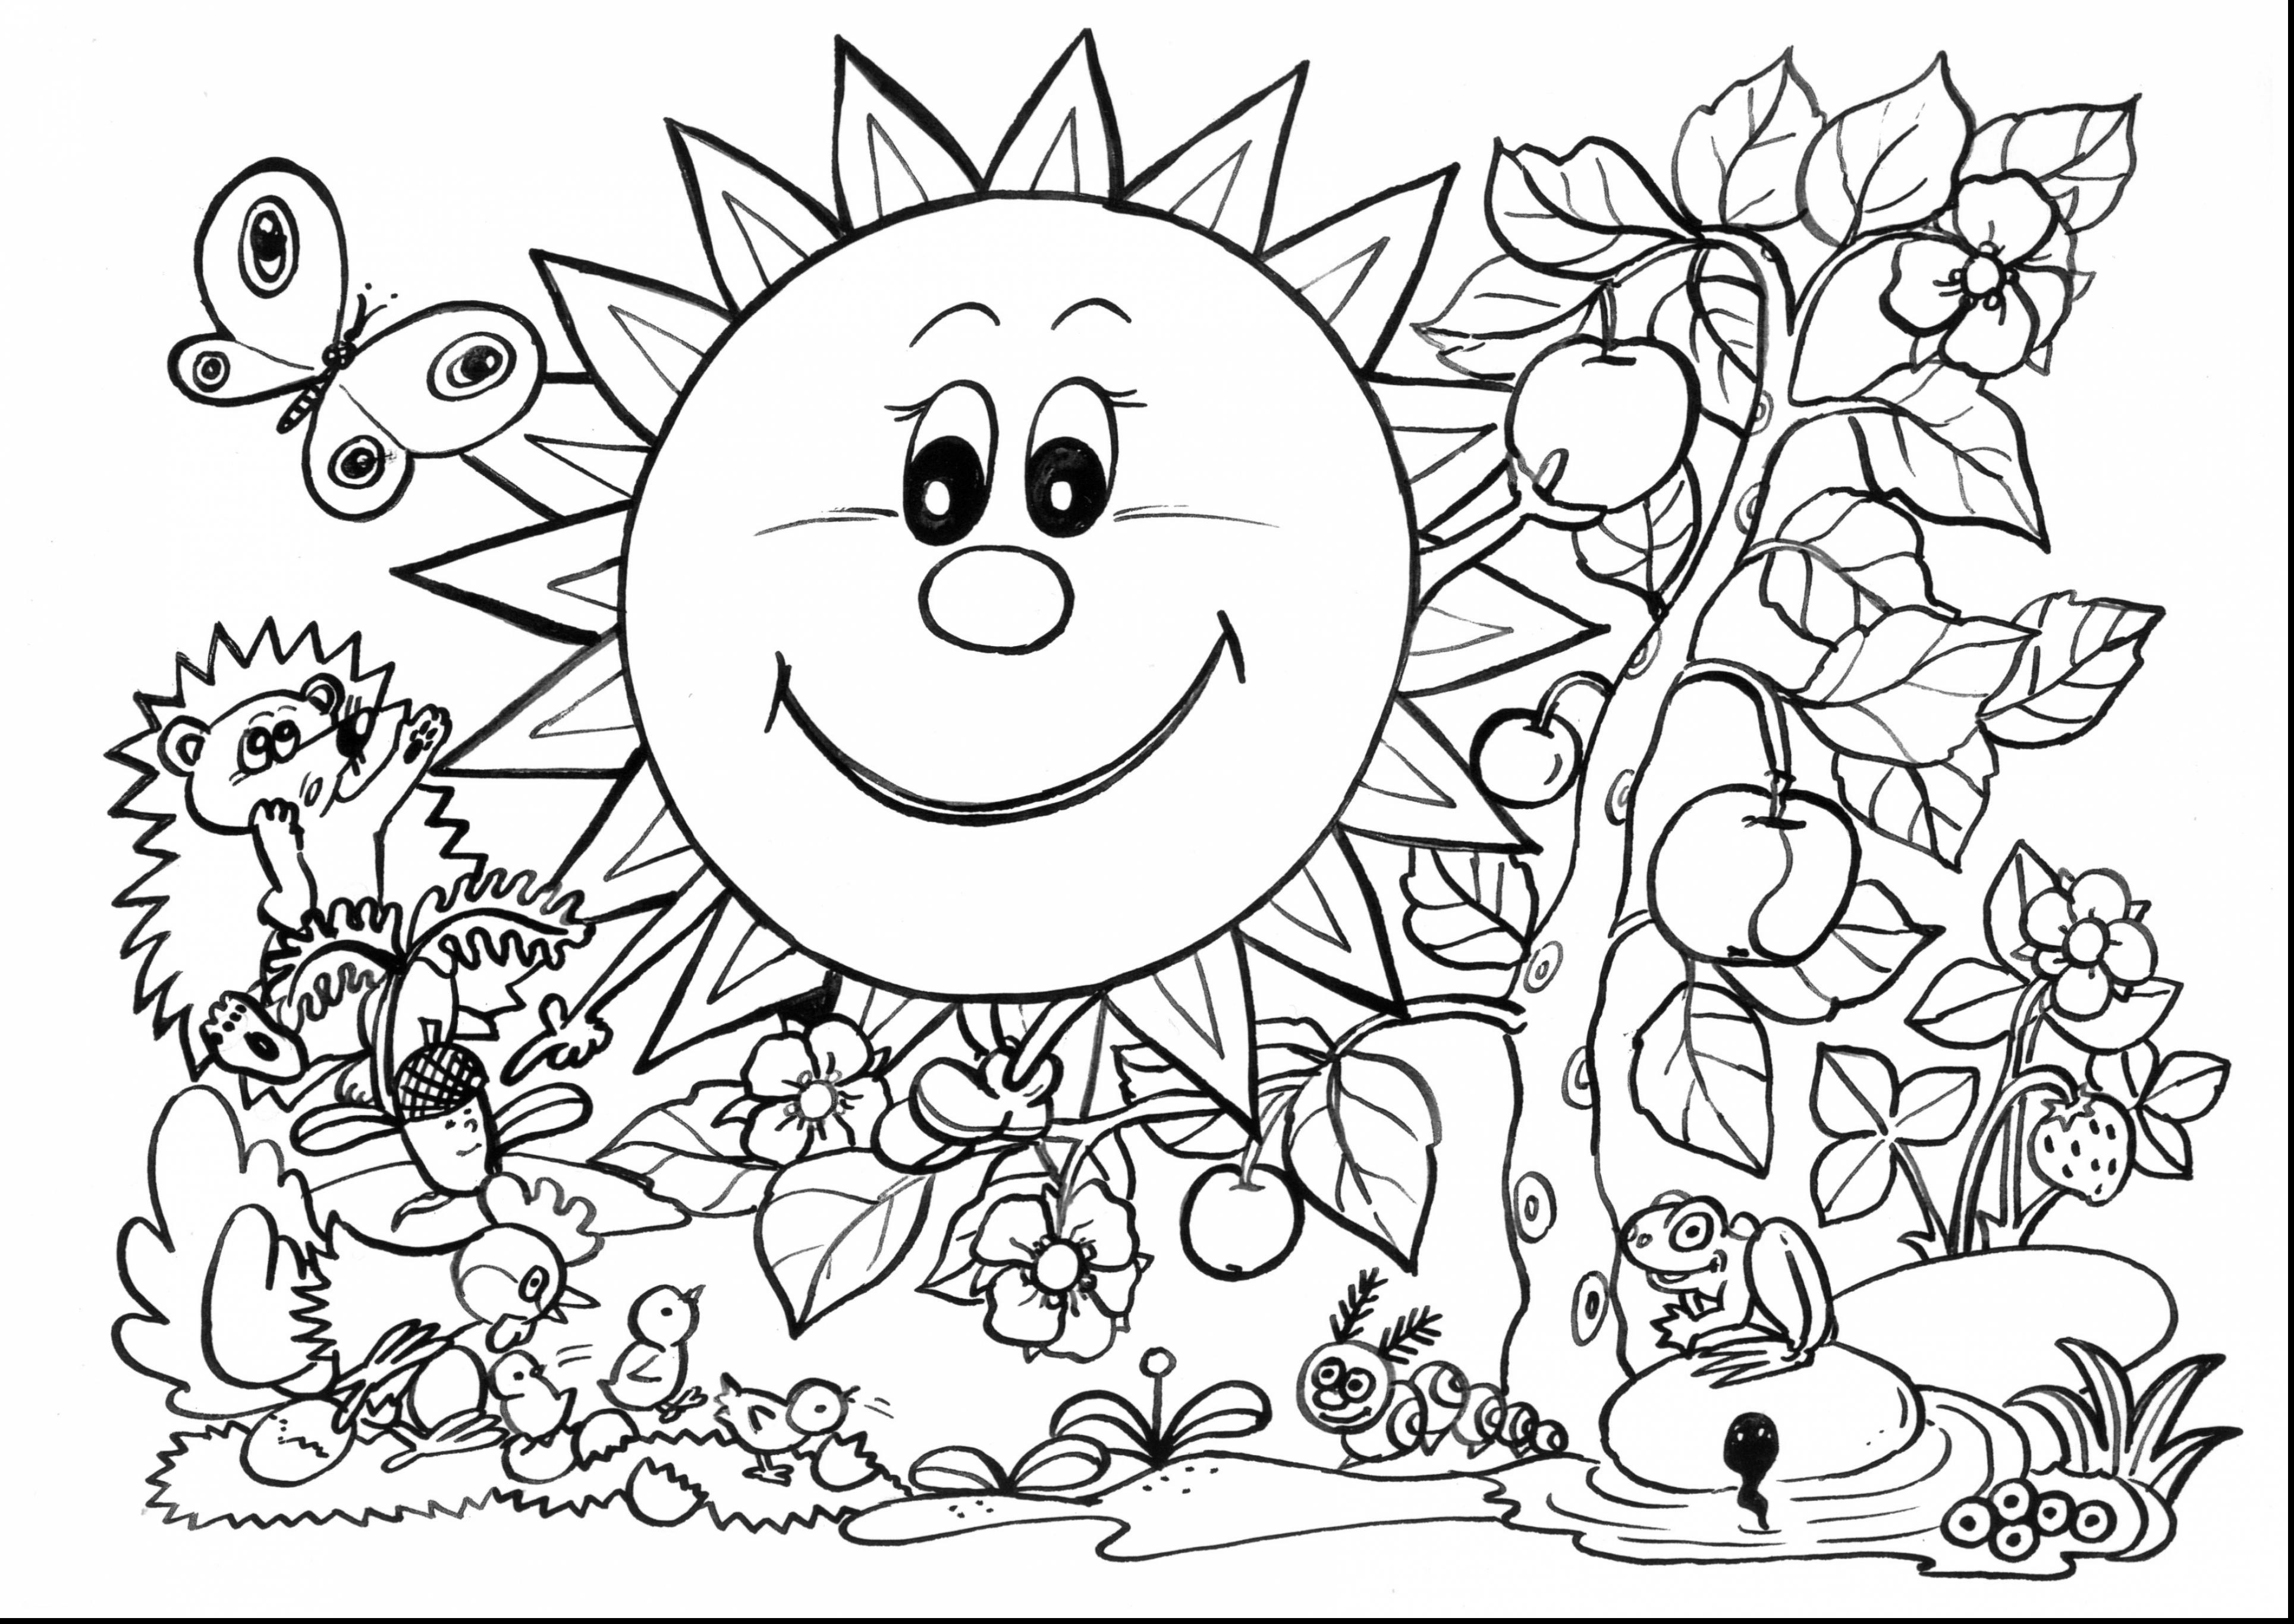 Spring Flowers Coloring Pages Epic Spring Flower Coloring Pages 81 On Gallery Ideas With For